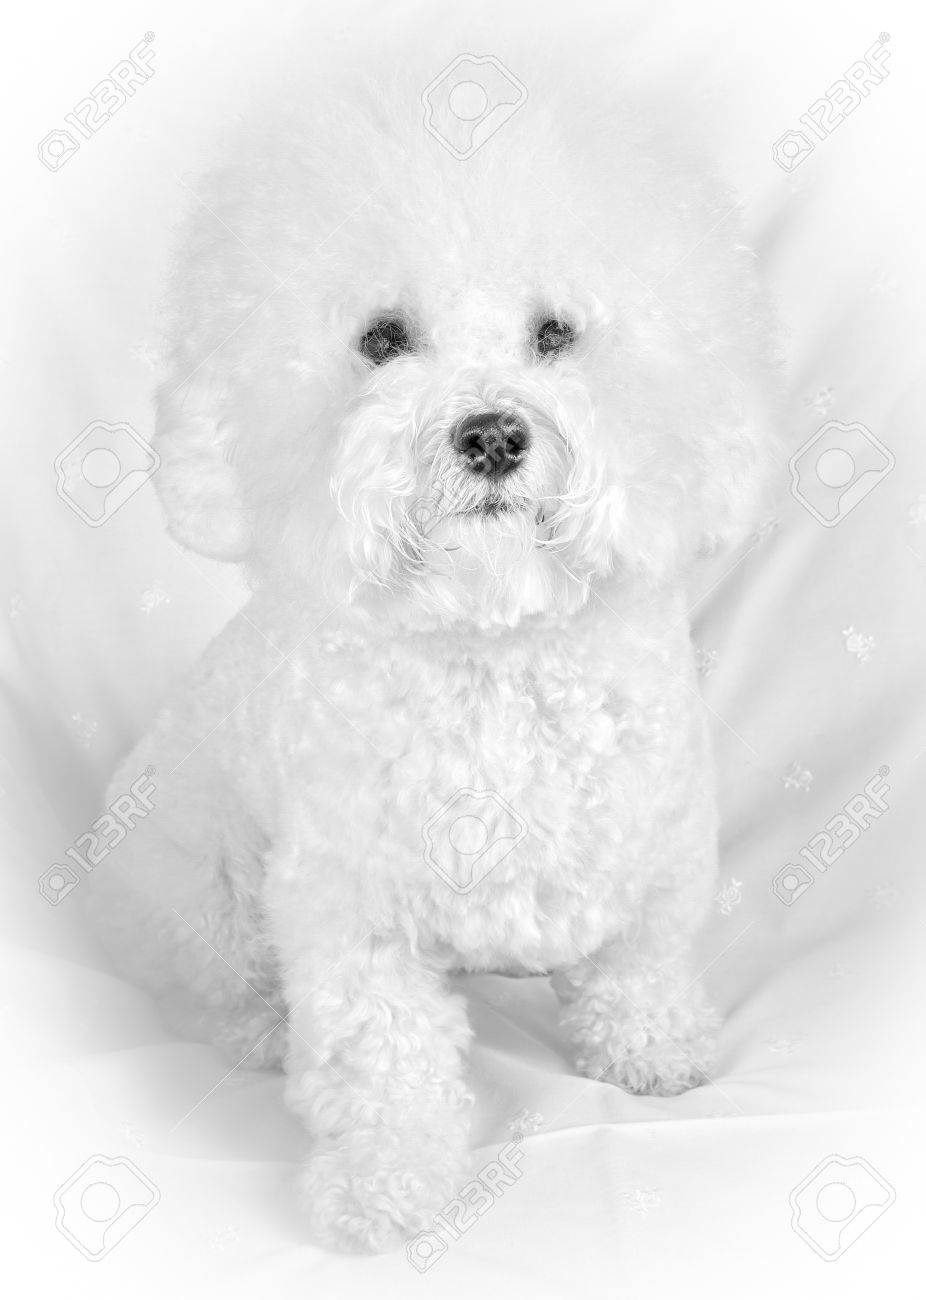 Attractive Fluffy Dog Pokemon Fluffy Dog Breeds Bichon Frise Fluffy Dog Sitting At Armchair Looking At Bichon Frise Fluffy Dog Sitting At Armchair bark post Fluffy White Dog